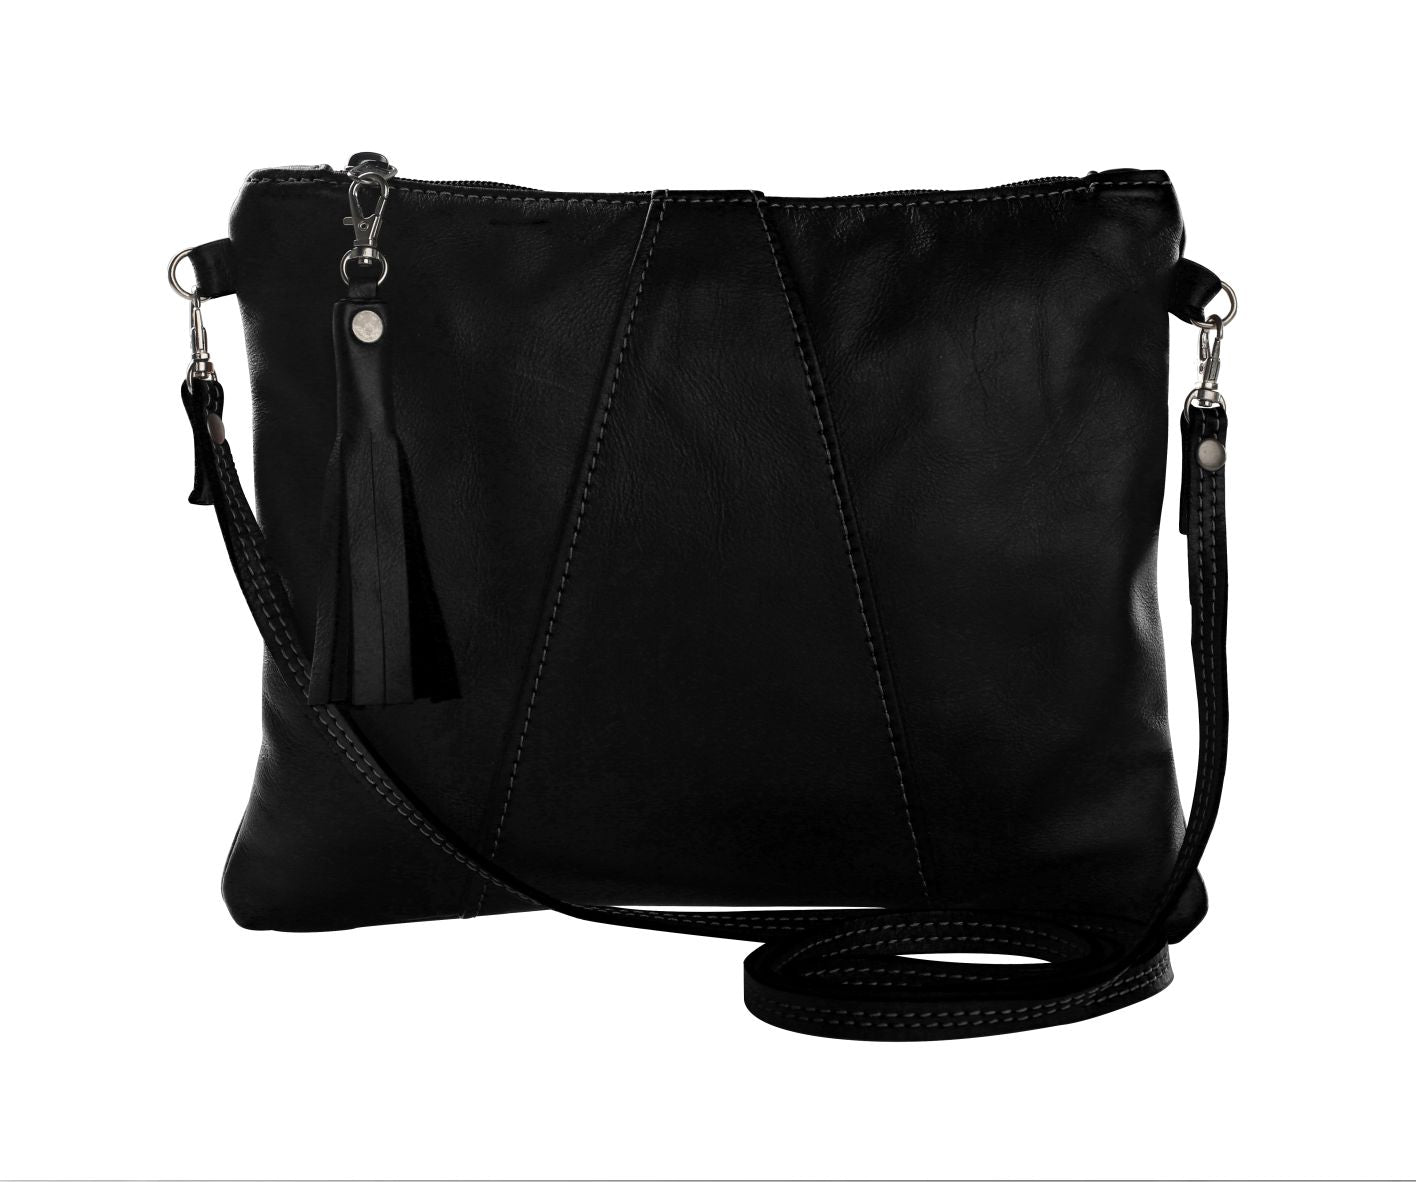 Thandana Cross Over Sling Bag - Black - Zufrique Boutique